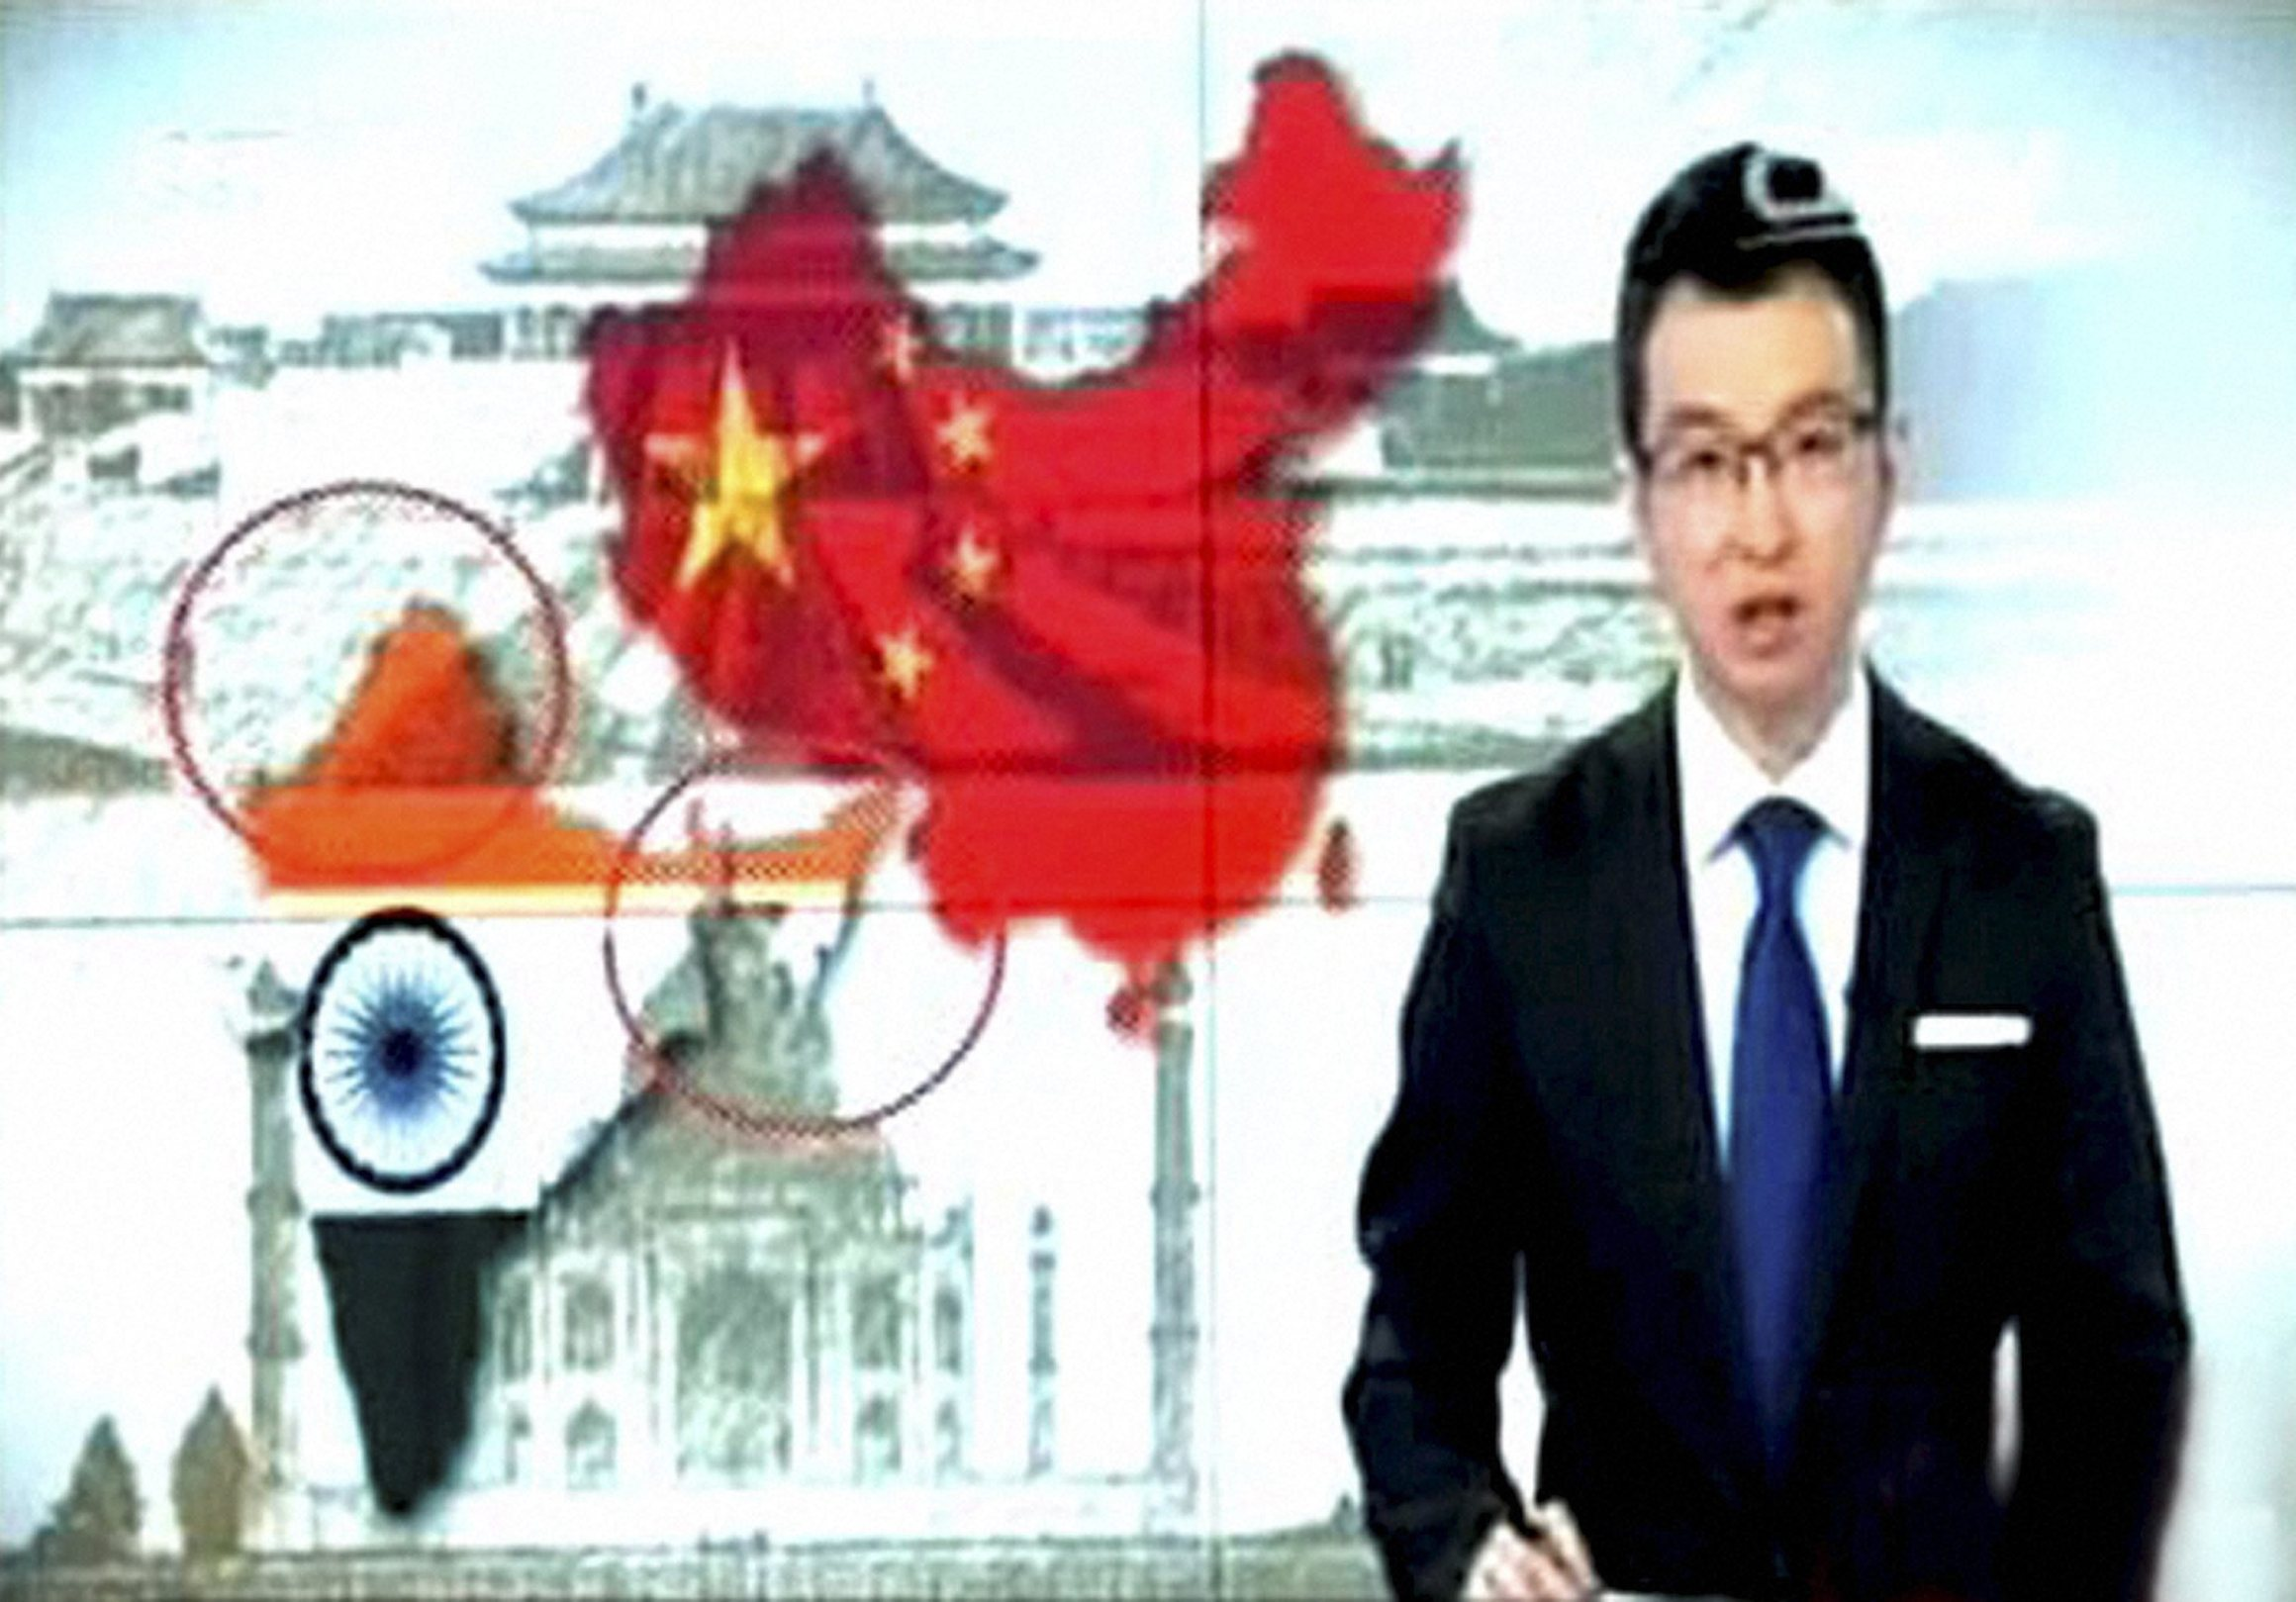 Screengrab of the CCTV report showing Indian territory without Jammu and Kashmir and Arunachal Pradesh.